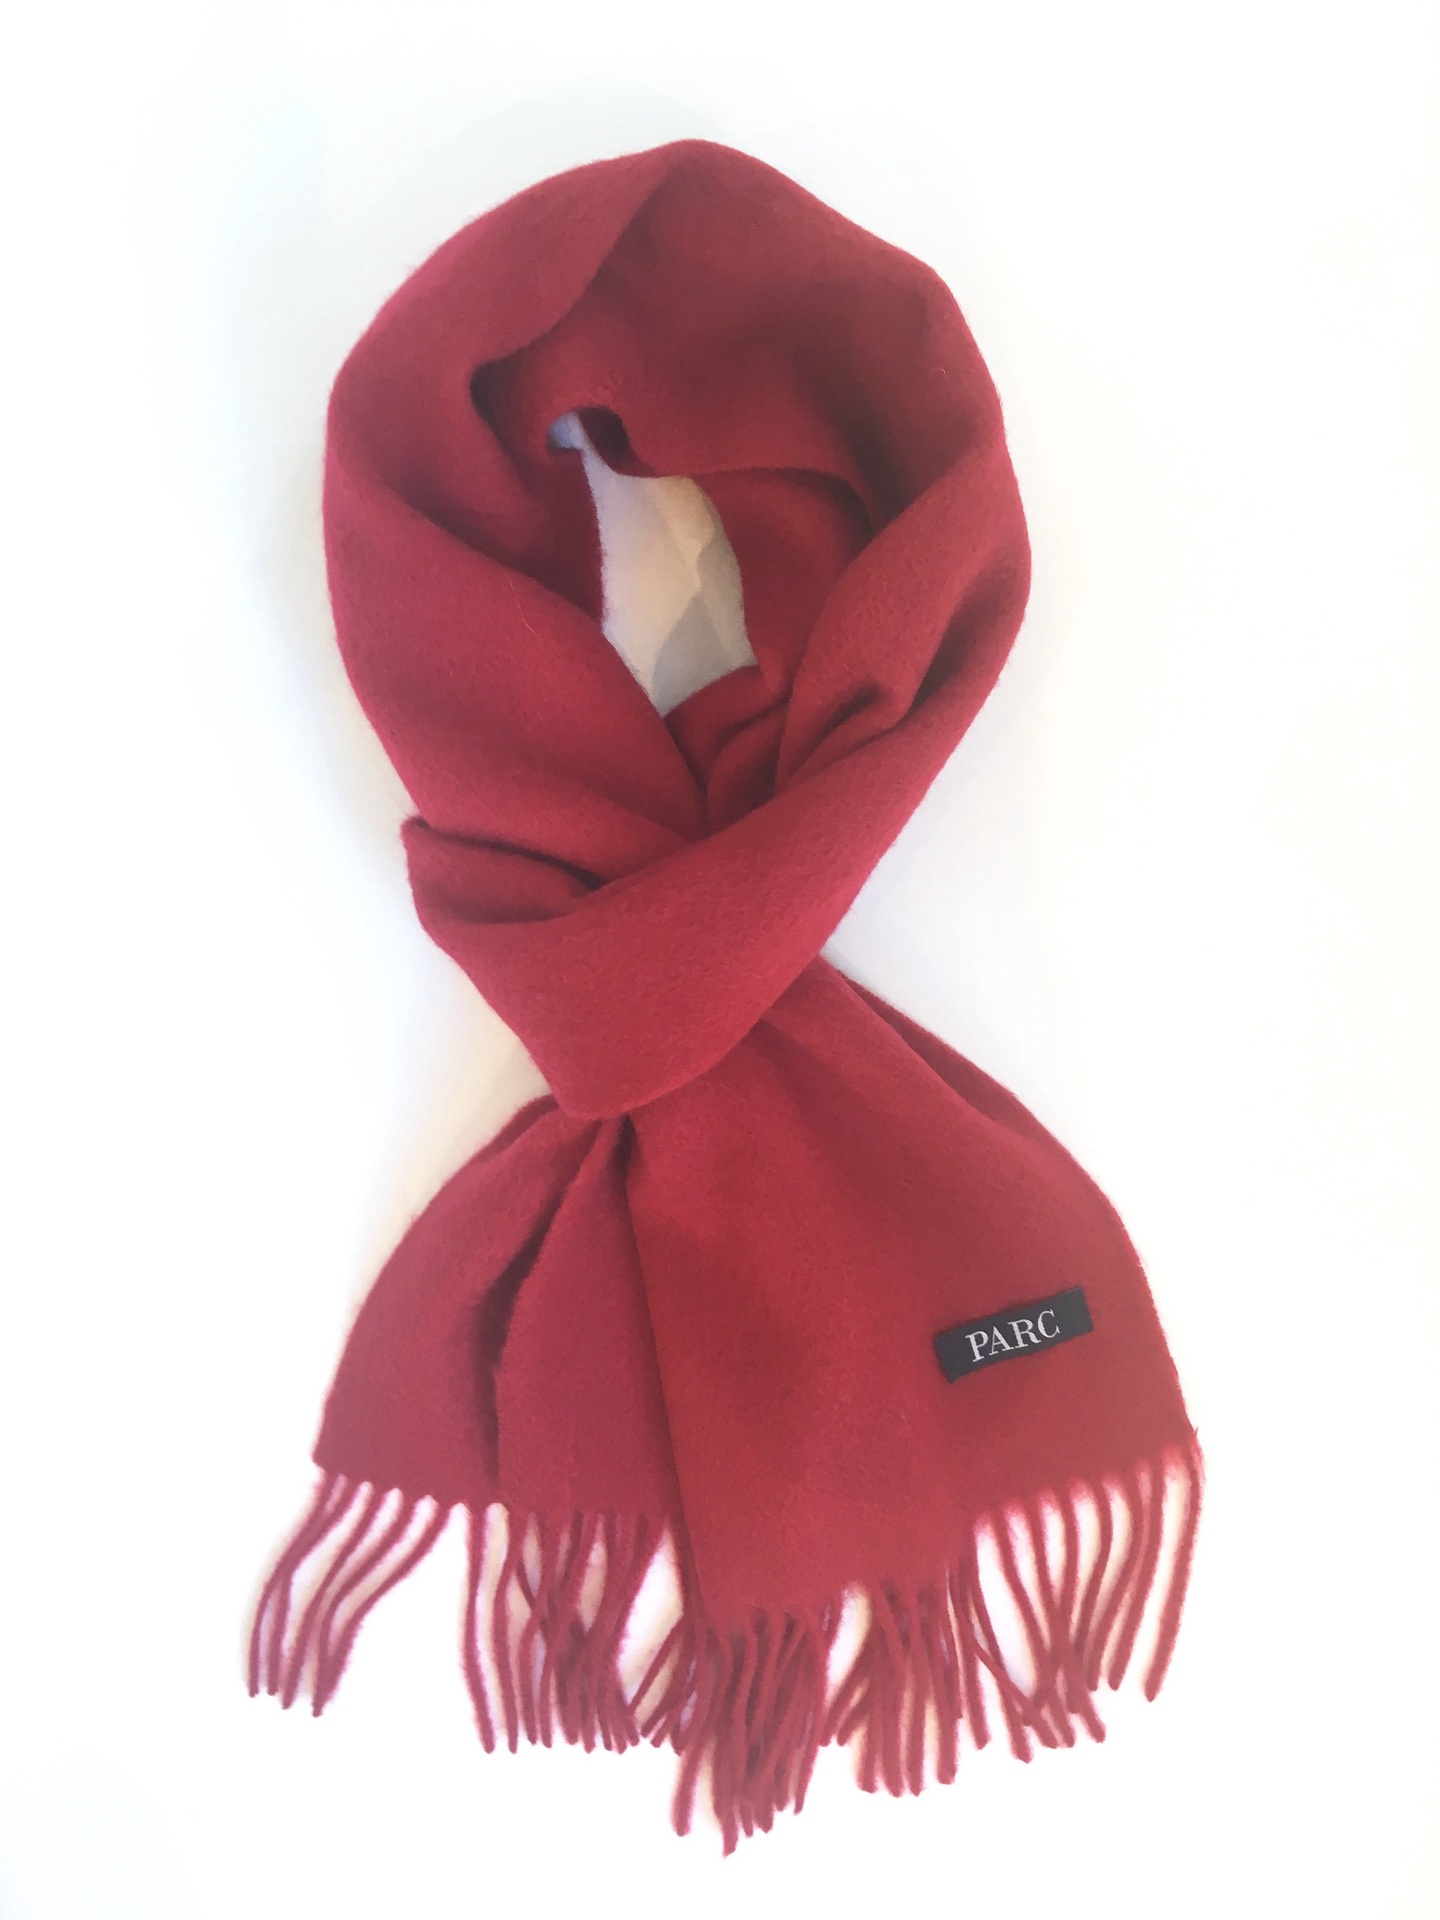 Parc City Boot Co. - Heavy Wool Scarf in Red Solid